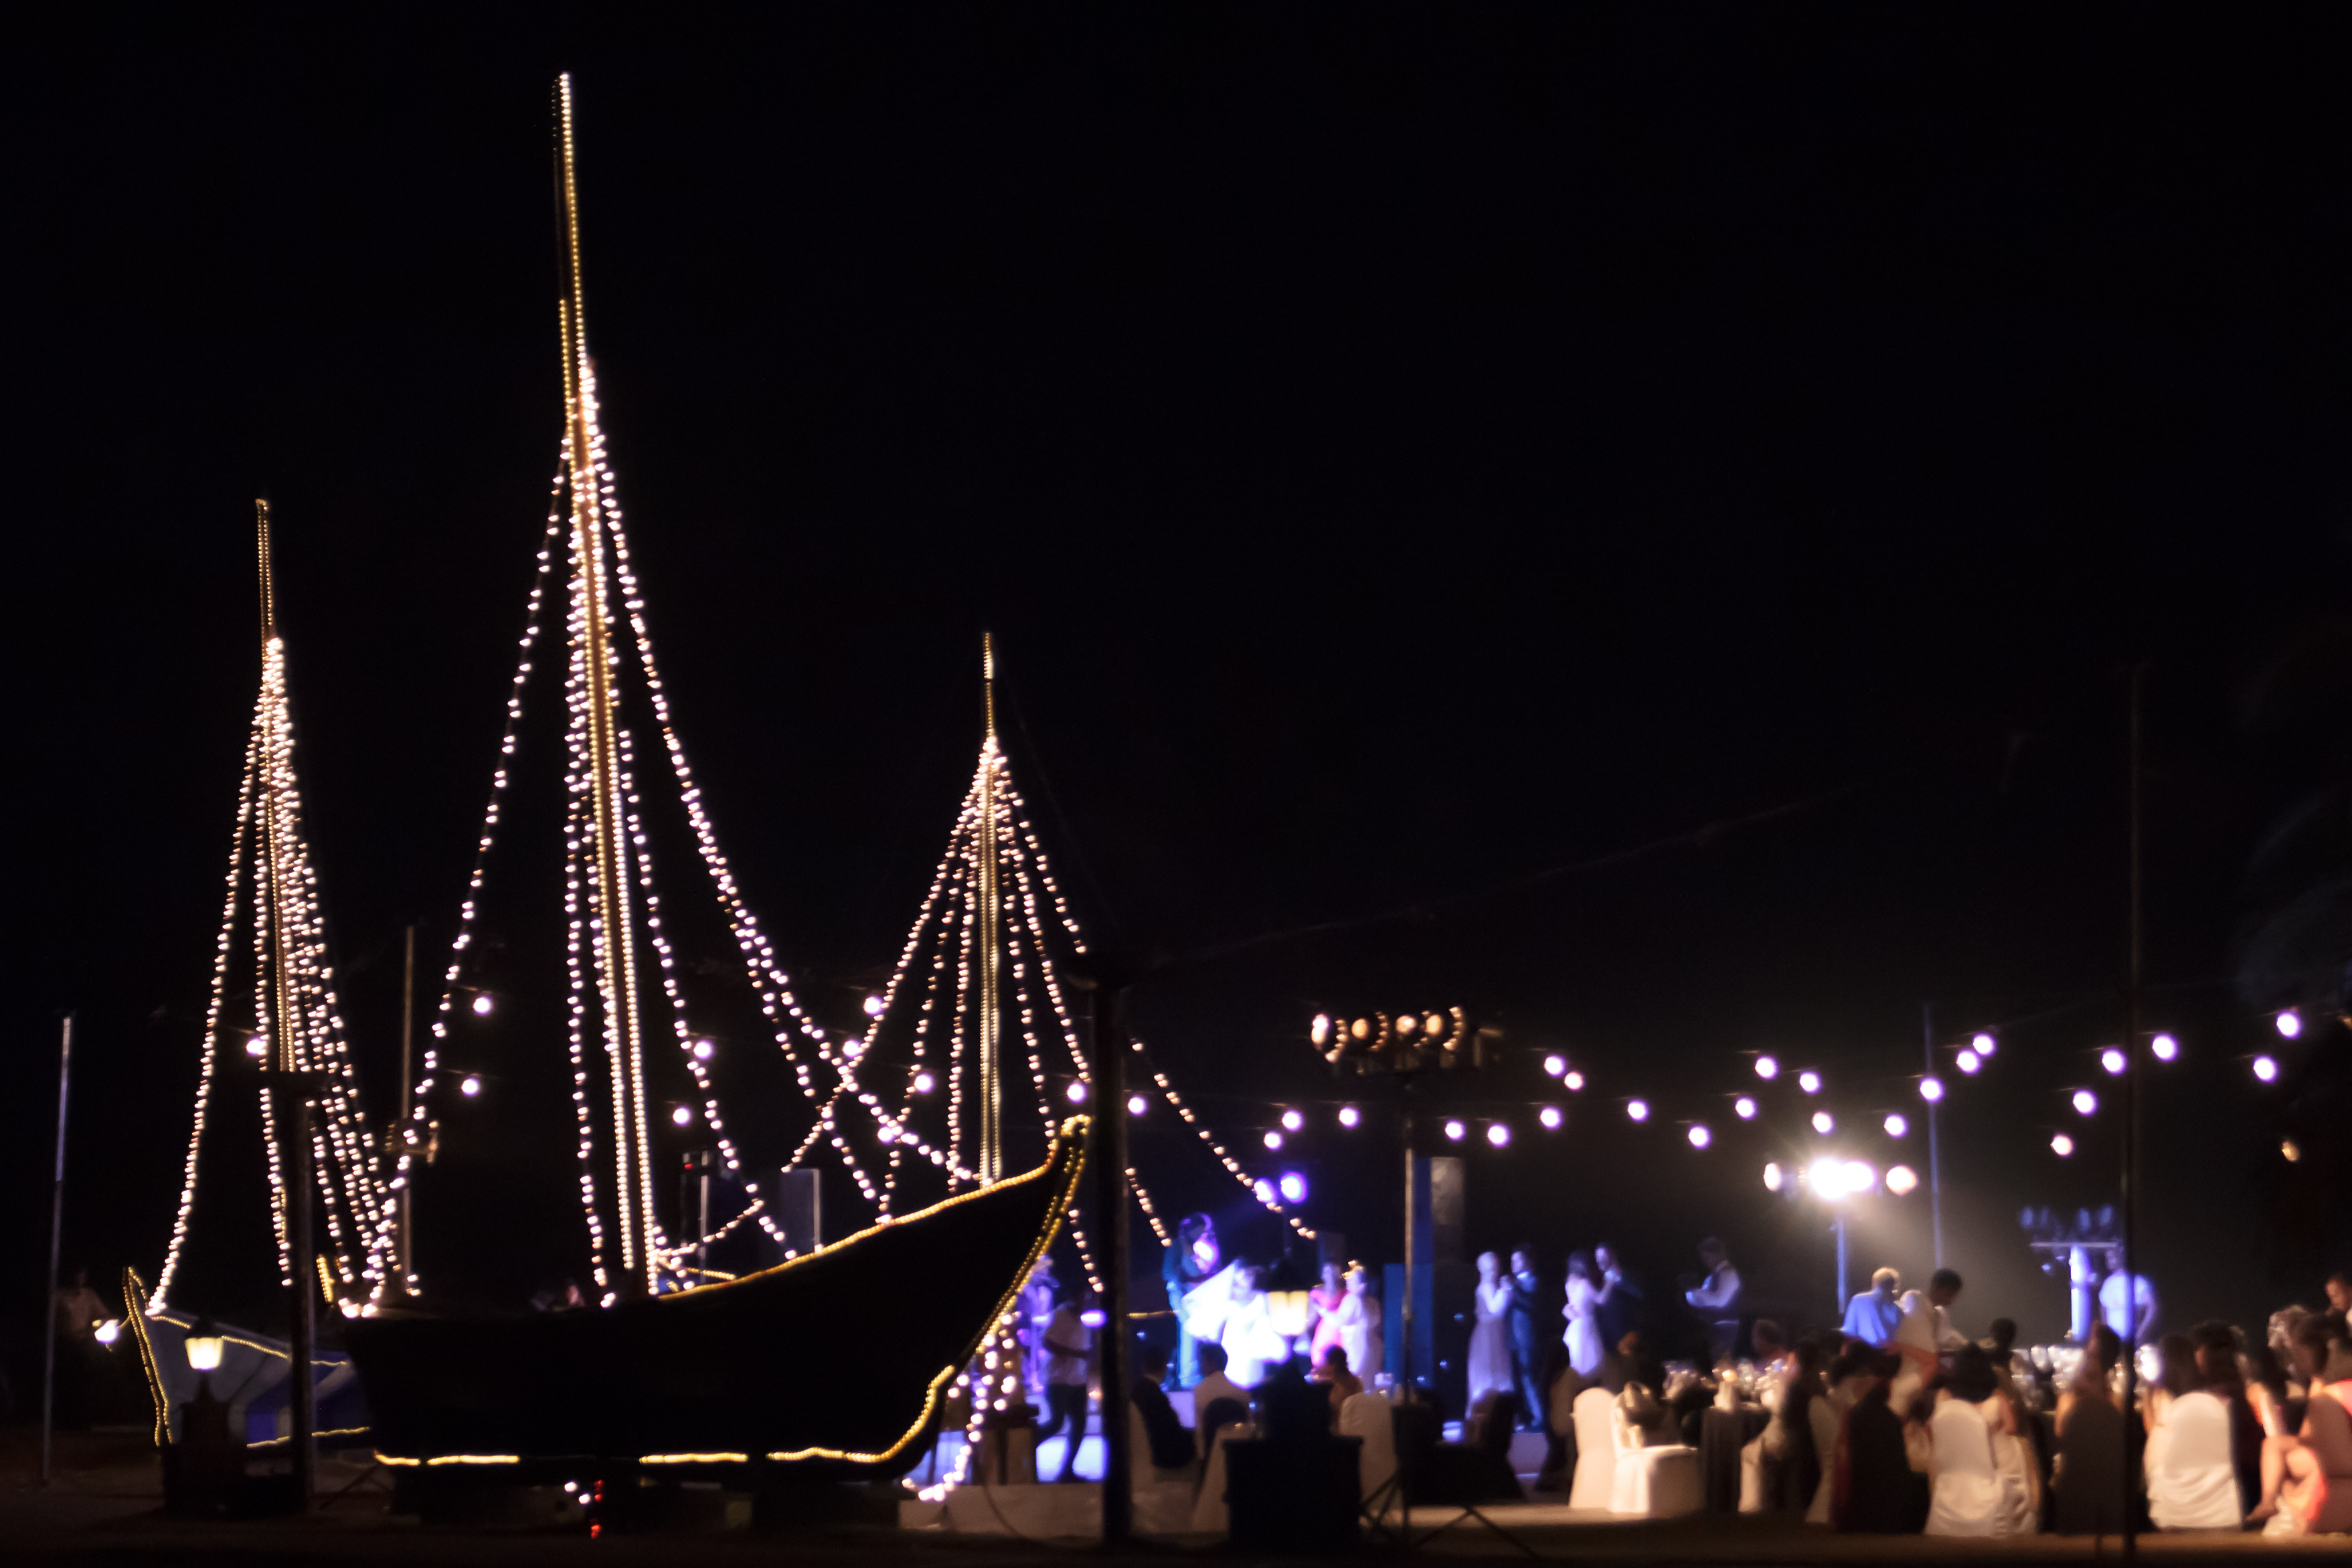 Sailing through the fairy lights